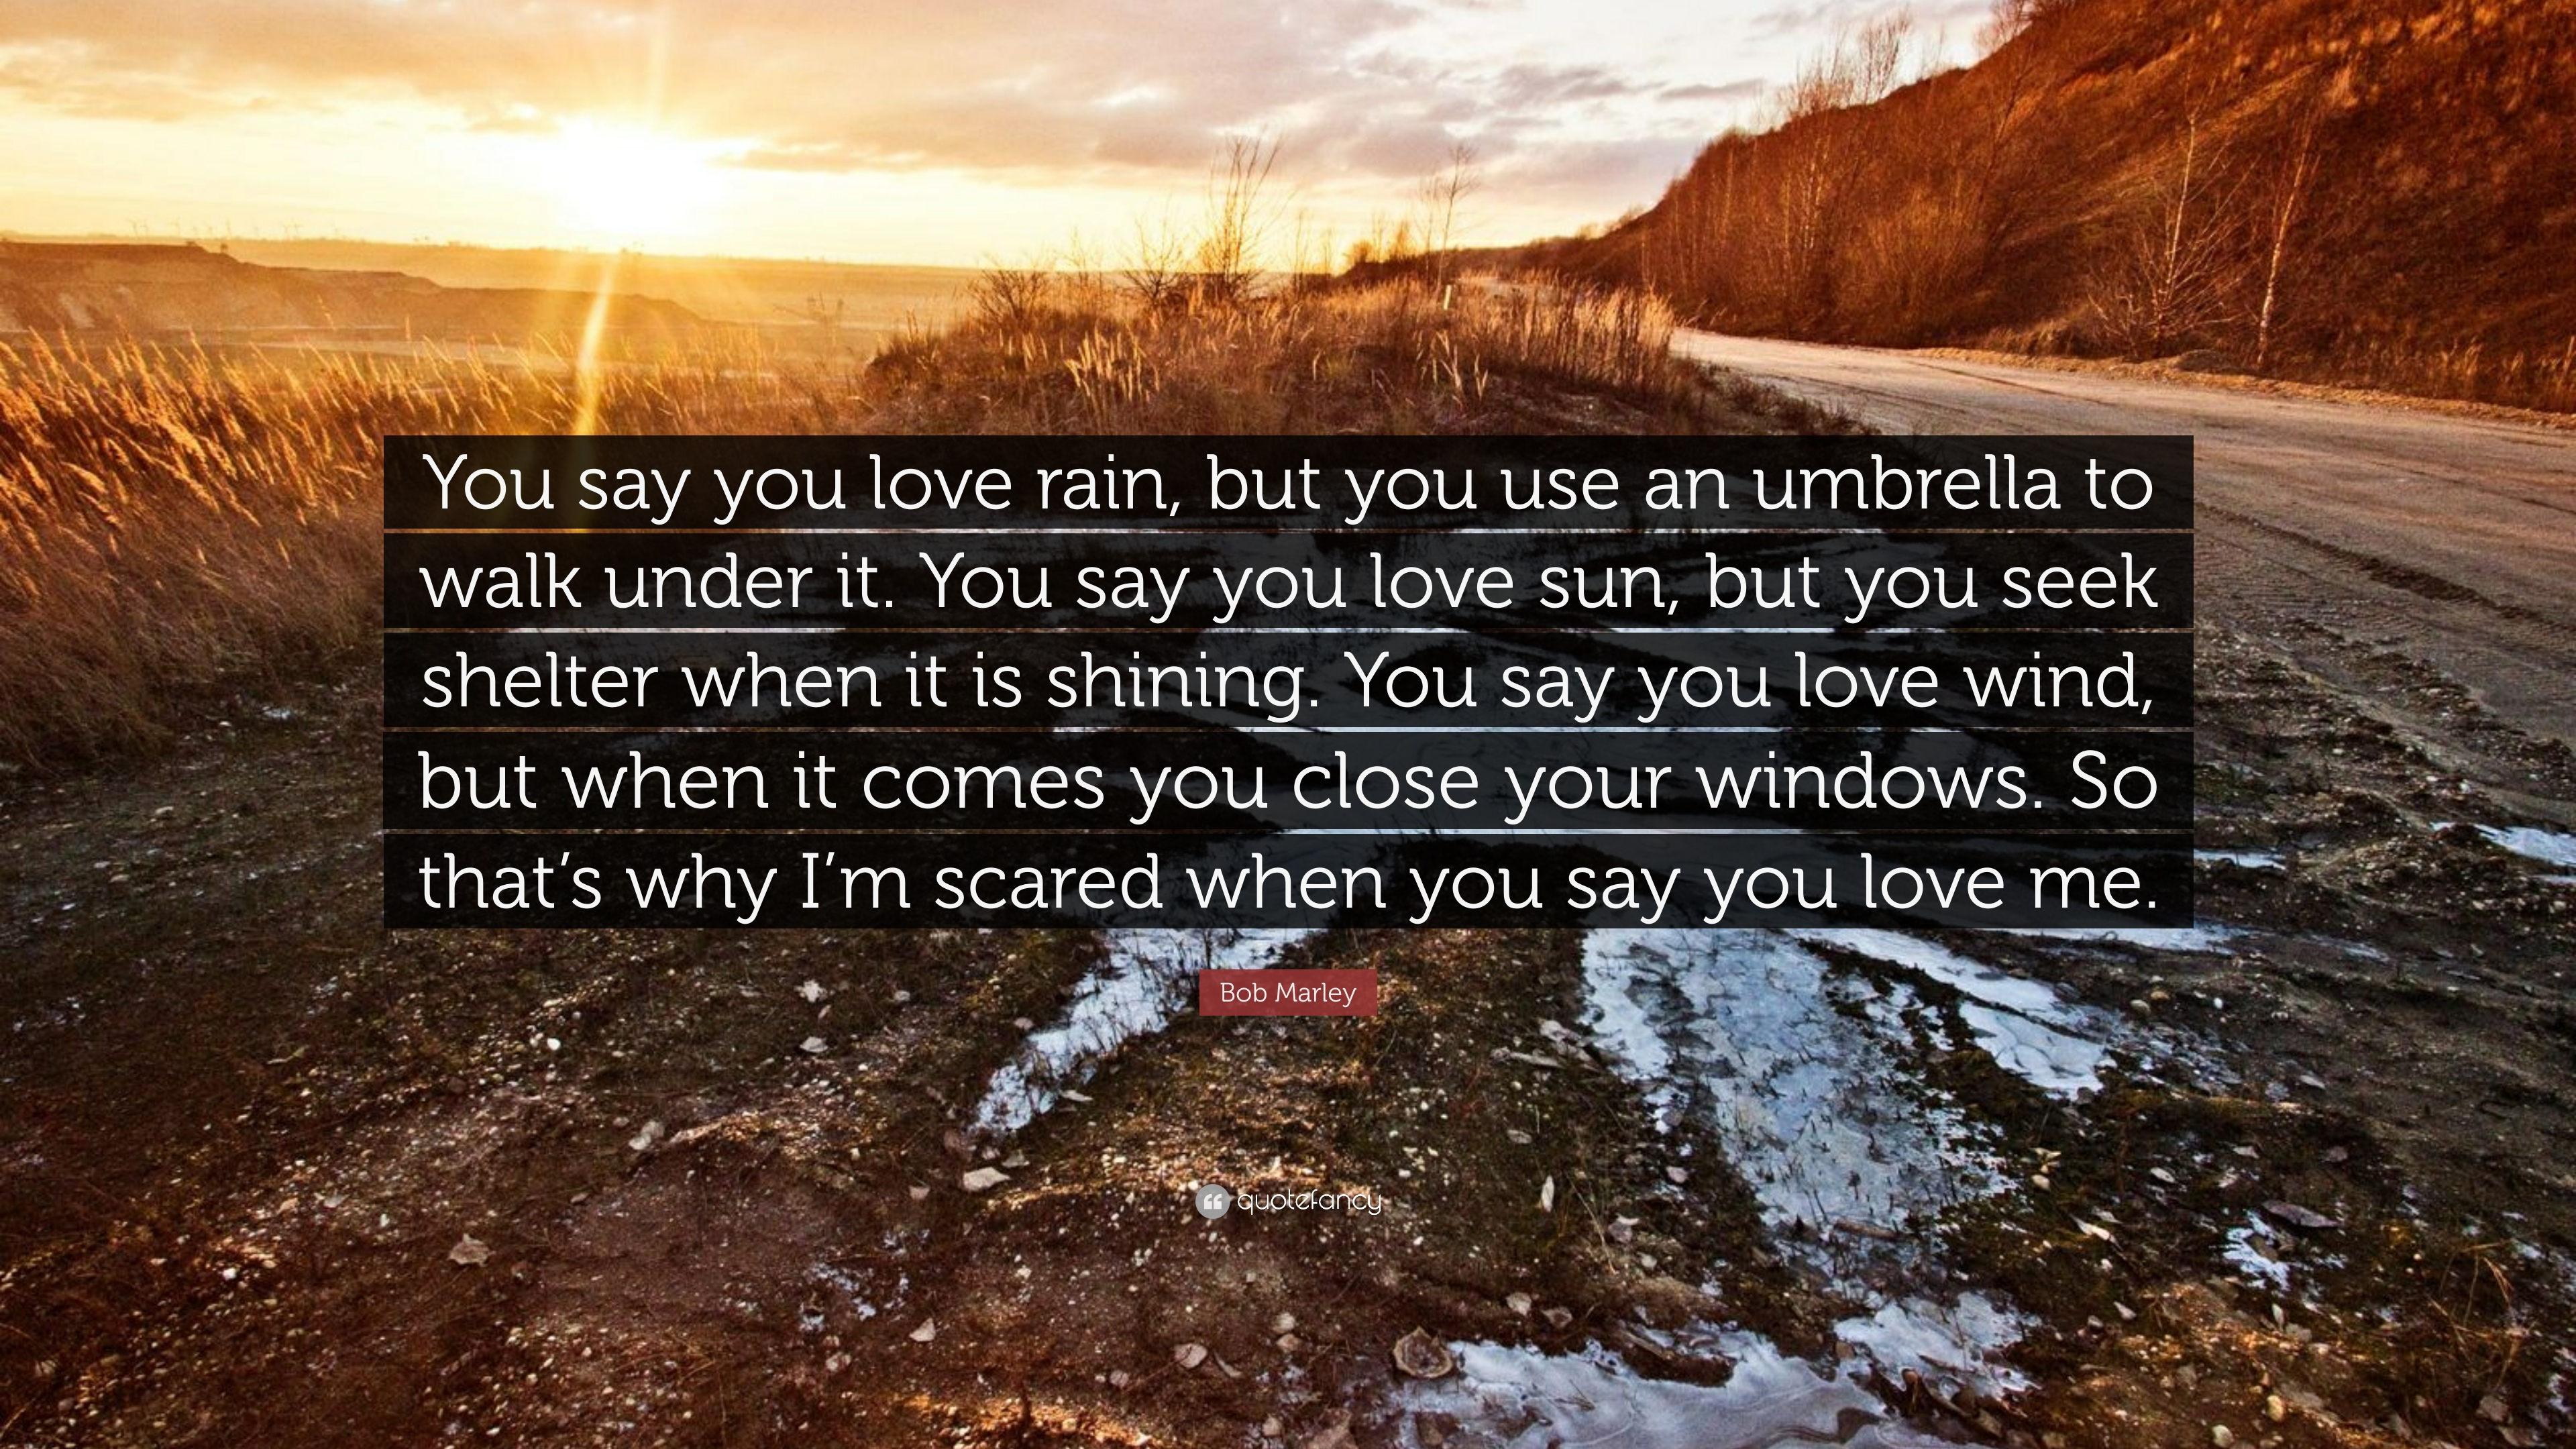 Bob Marley Quote You Say You Love Rain But You Use An Umbrella To